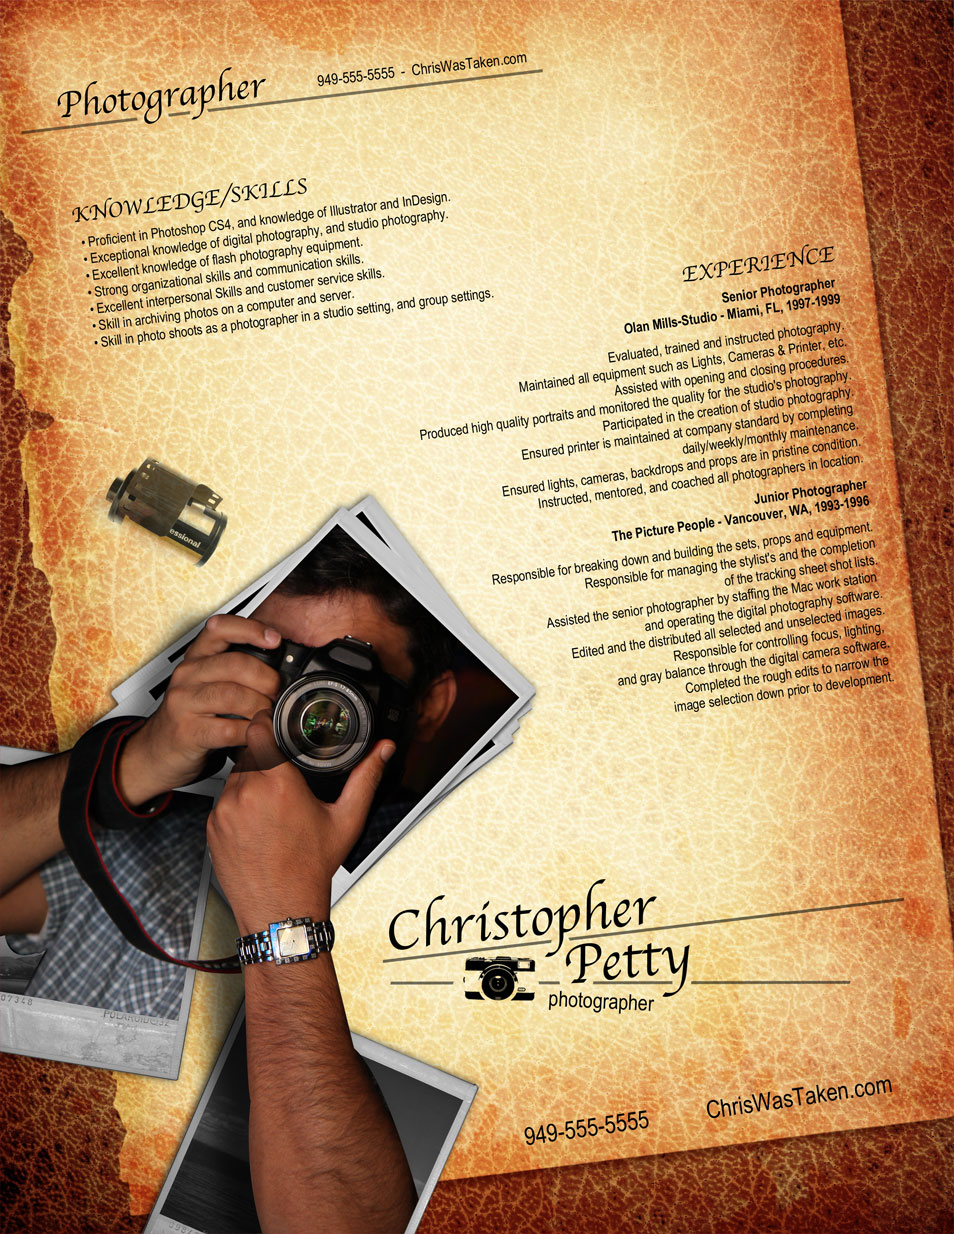 Opposenewapstandardsus  Terrific  Creative Cvresume Design Inspiration With Inspiring Resume Photographer With Nice Resume Objective For Internship Also Database Administrator Resume In Addition Resume Template Download Word And How To Email Resume As Well As Medical Office Manager Resume Additionally Should I Put My Gpa On My Resume From Cssauthorcom With Opposenewapstandardsus  Inspiring  Creative Cvresume Design Inspiration With Nice Resume Photographer And Terrific Resume Objective For Internship Also Database Administrator Resume In Addition Resume Template Download Word From Cssauthorcom